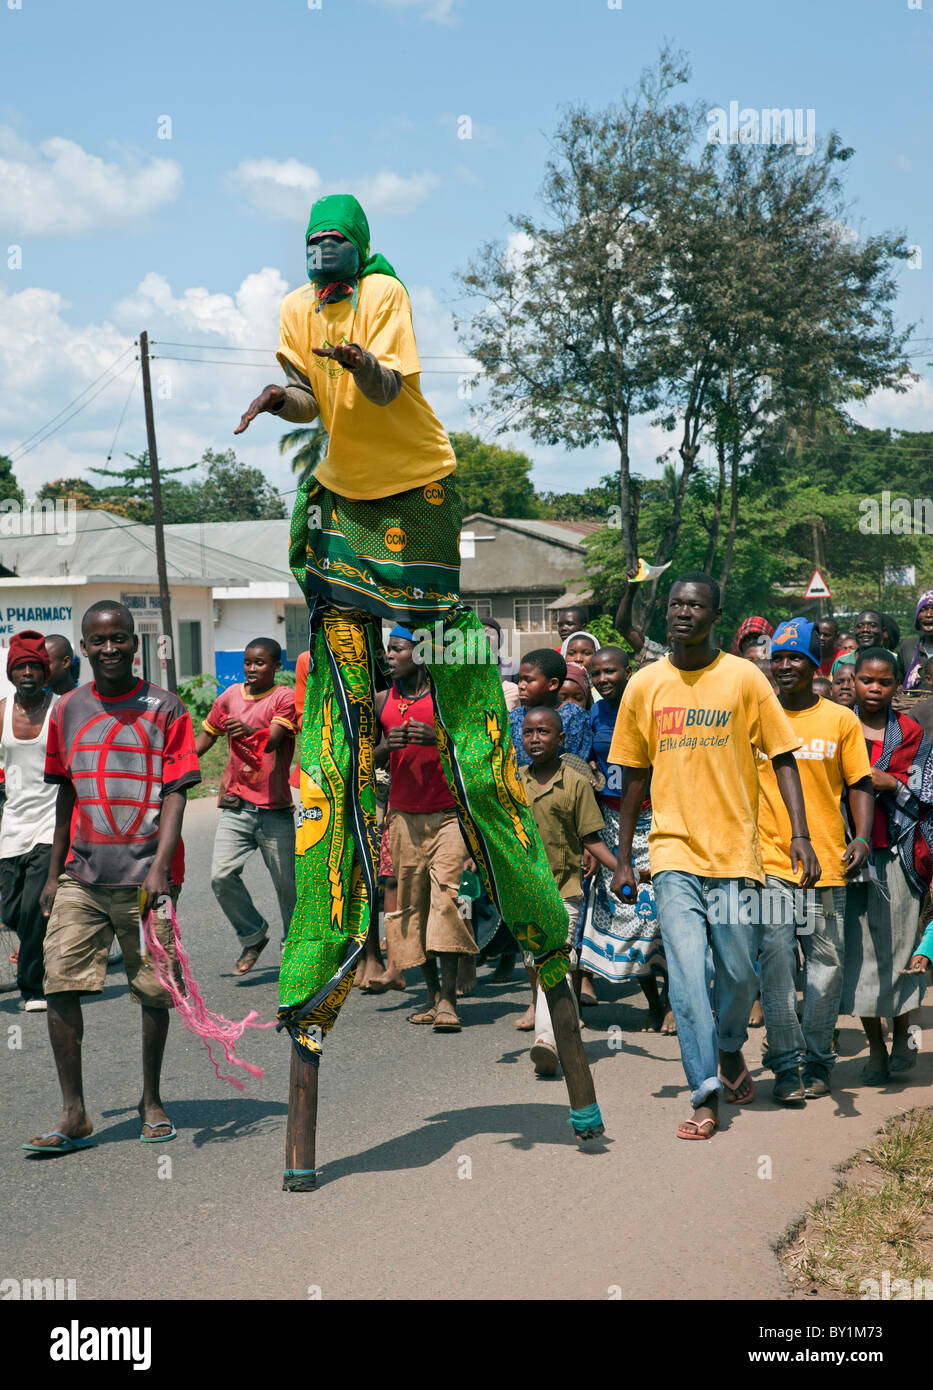 A stilt-walker leads a group of youths and children through the streets of Kerogwe prior to a political rally. - Stock Image